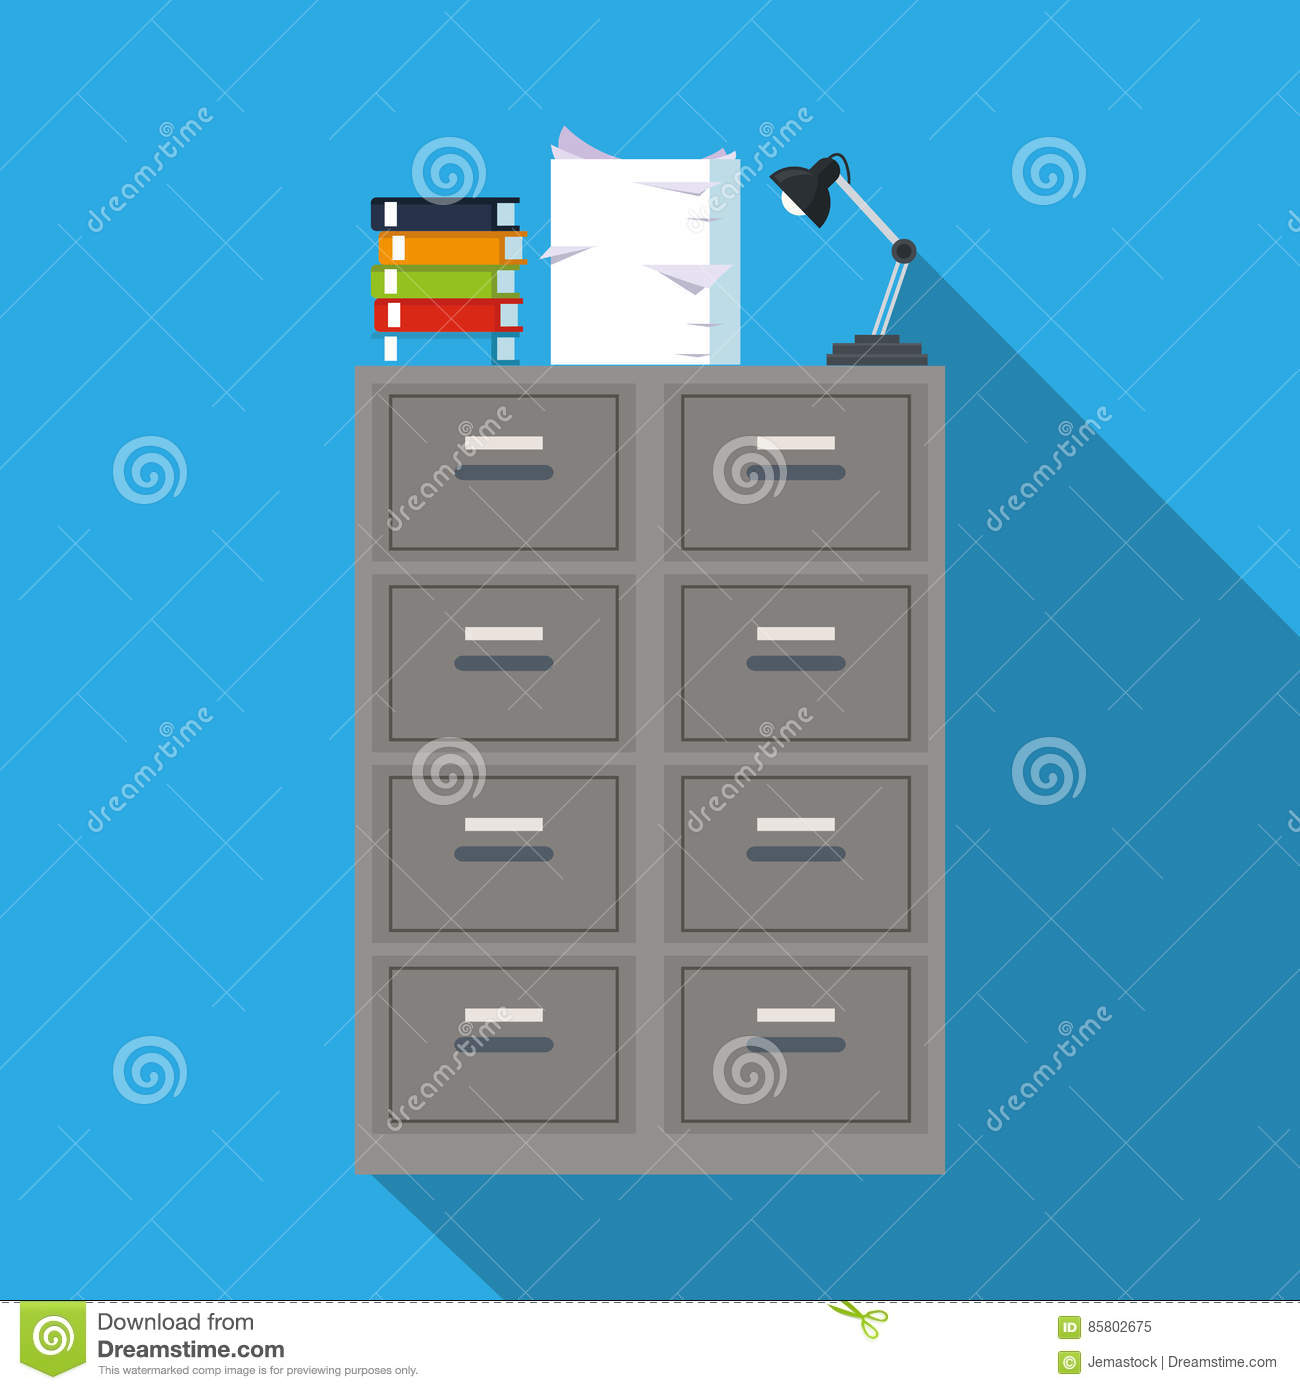 Top reasons why Organizations should have a good filing system